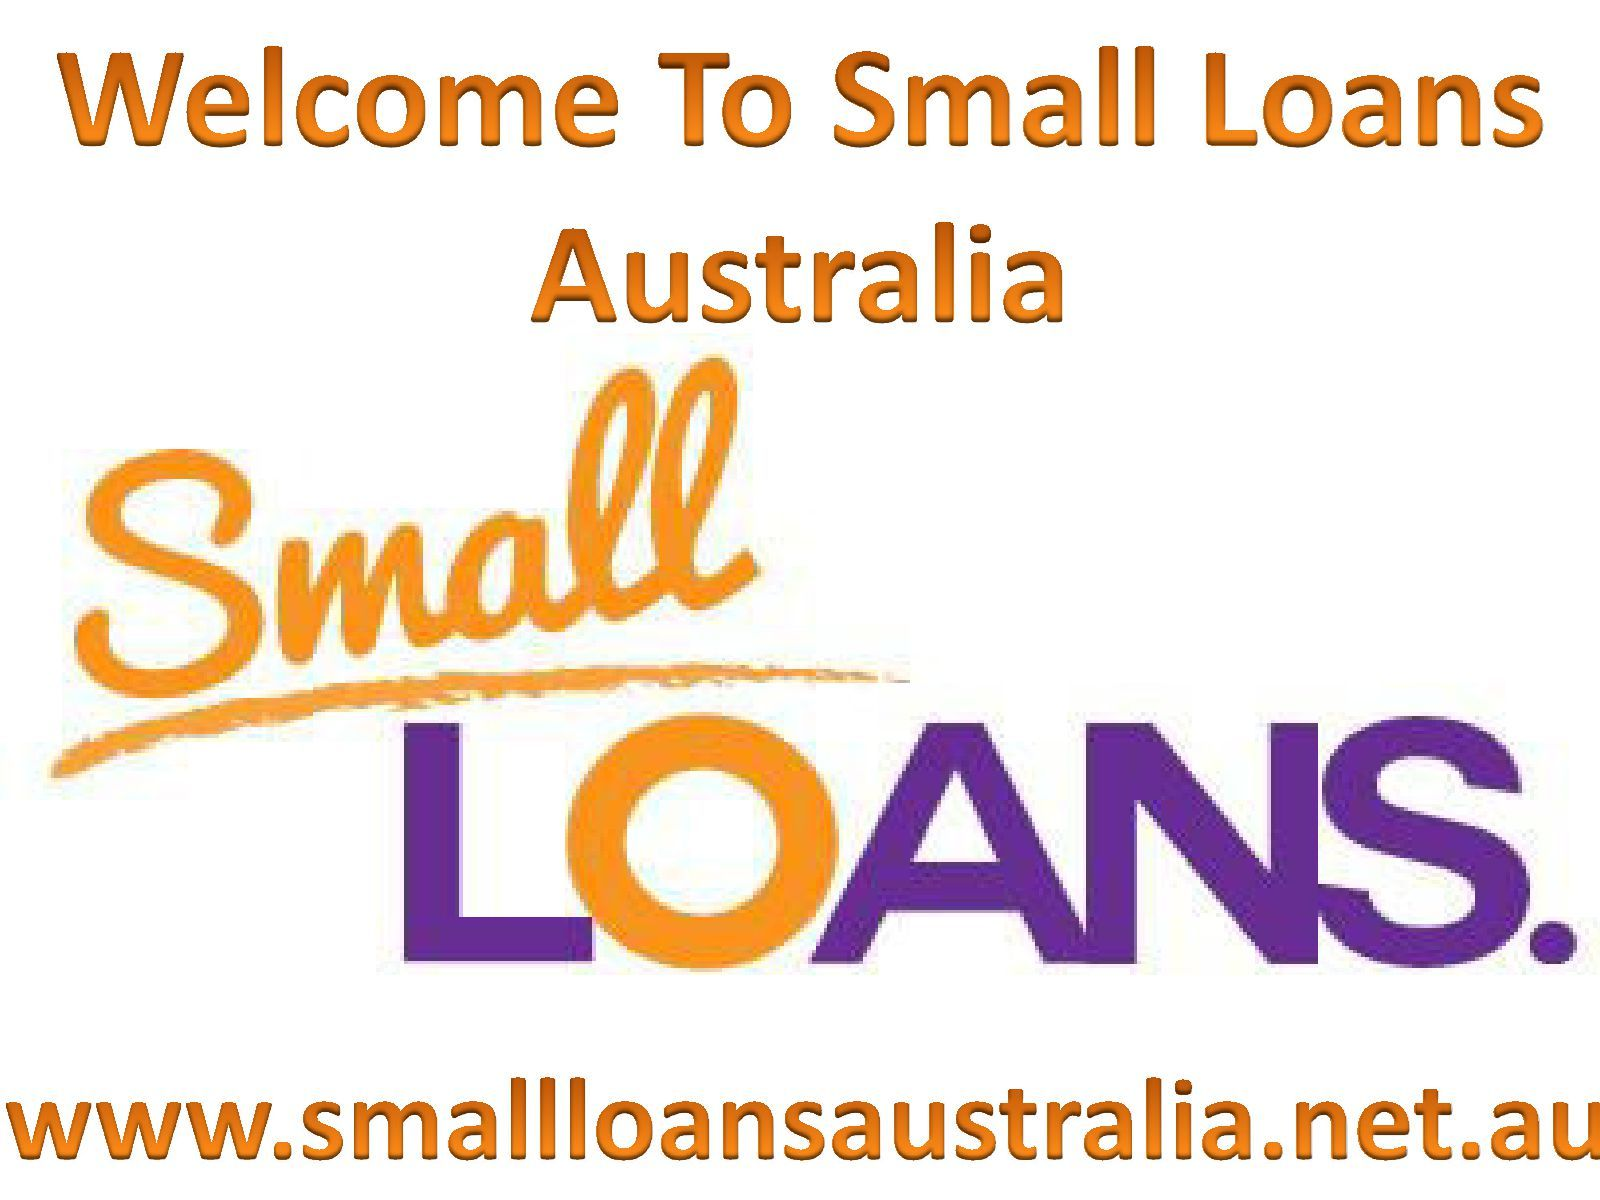 Small Loans Australia- Avail Instant Finances Planned To Serve Your Needs At Reasonable Terms